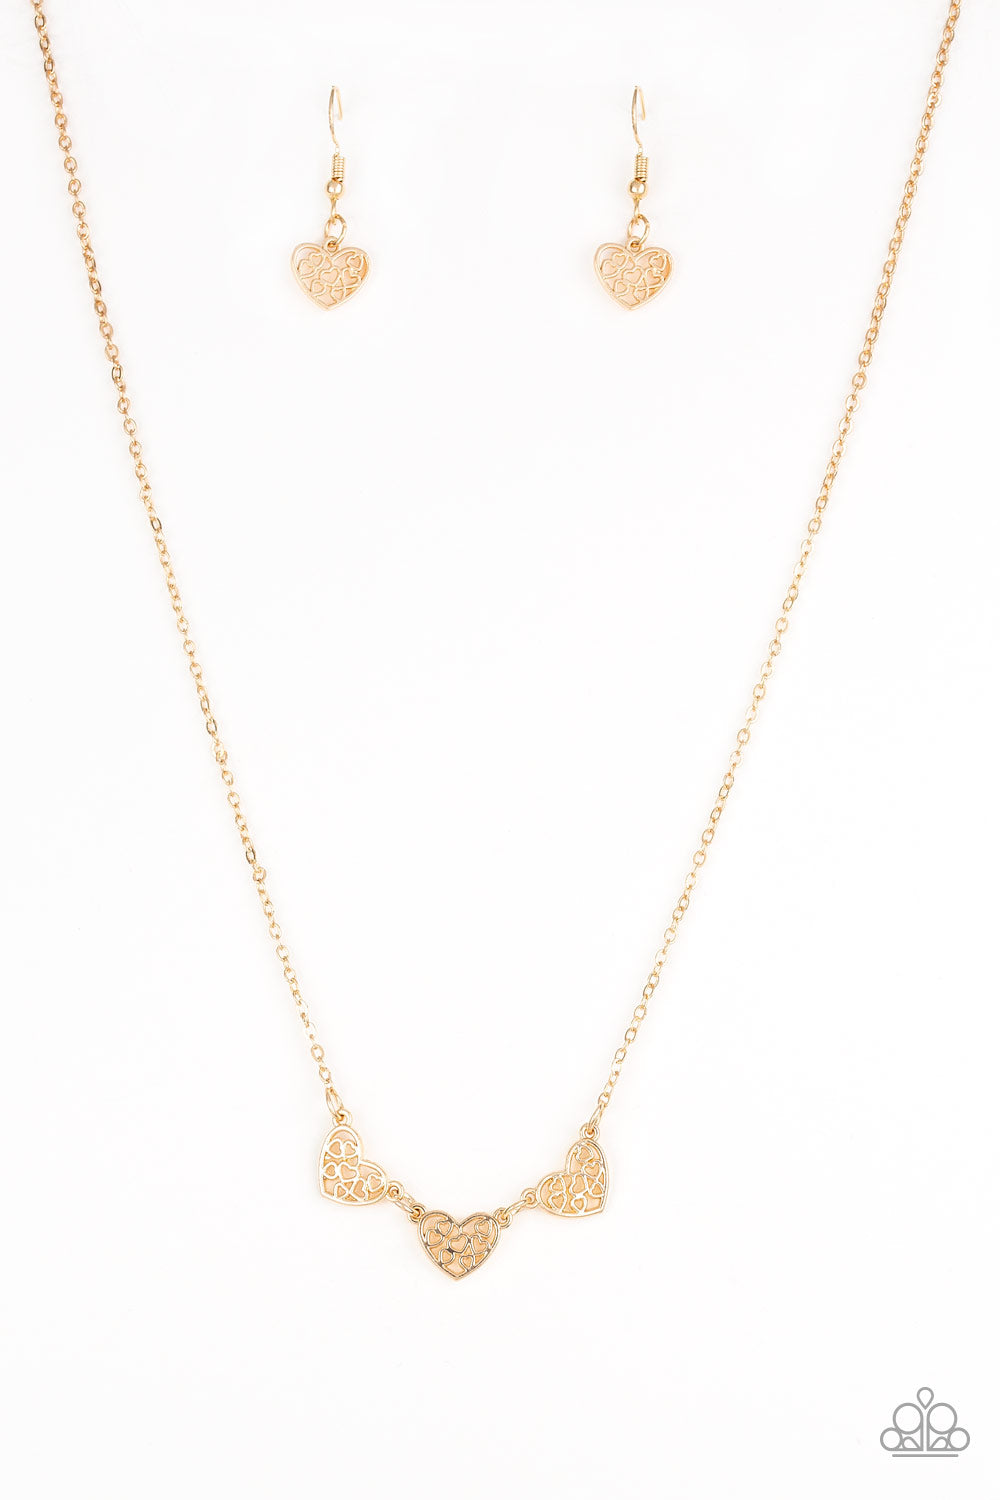 455fa0e4be Another Love Story - Gold - Heart Necklace and matching Earrings ...